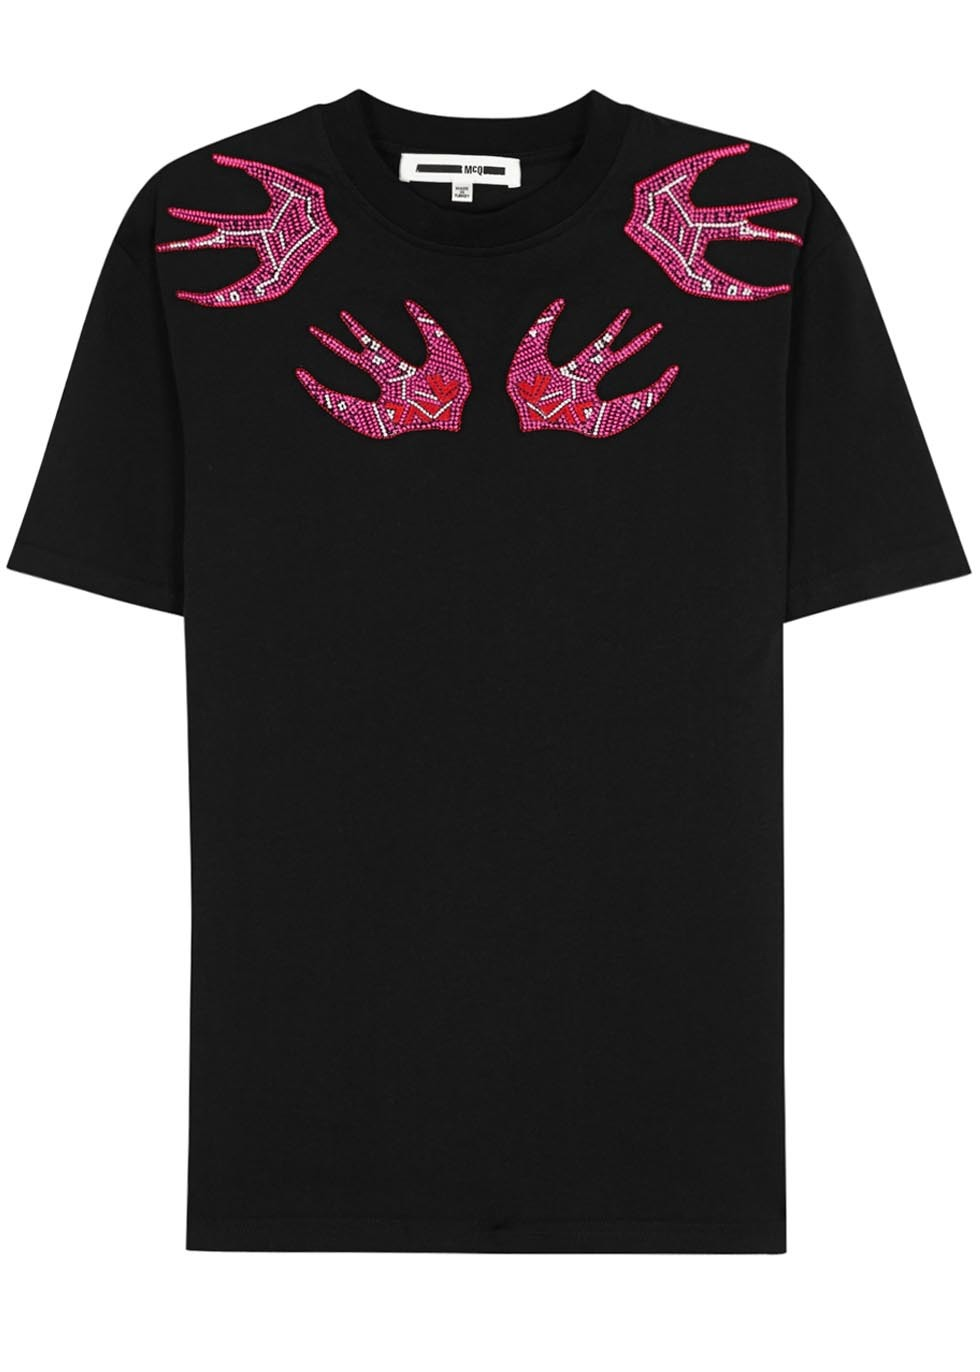 Black Swallow Embroidered Cotton T Shirt - style: t-shirt; secondary colour: hot pink; predominant colour: black; occasions: casual; length: standard; fibres: cotton - 100%; fit: body skimming; neckline: crew; sleeve length: short sleeve; sleeve style: standard; pattern type: fabric; pattern: patterned/print; texture group: jersey - stretchy/drapey; multicoloured: multicoloured; season: s/s 2016; wardrobe: highlight